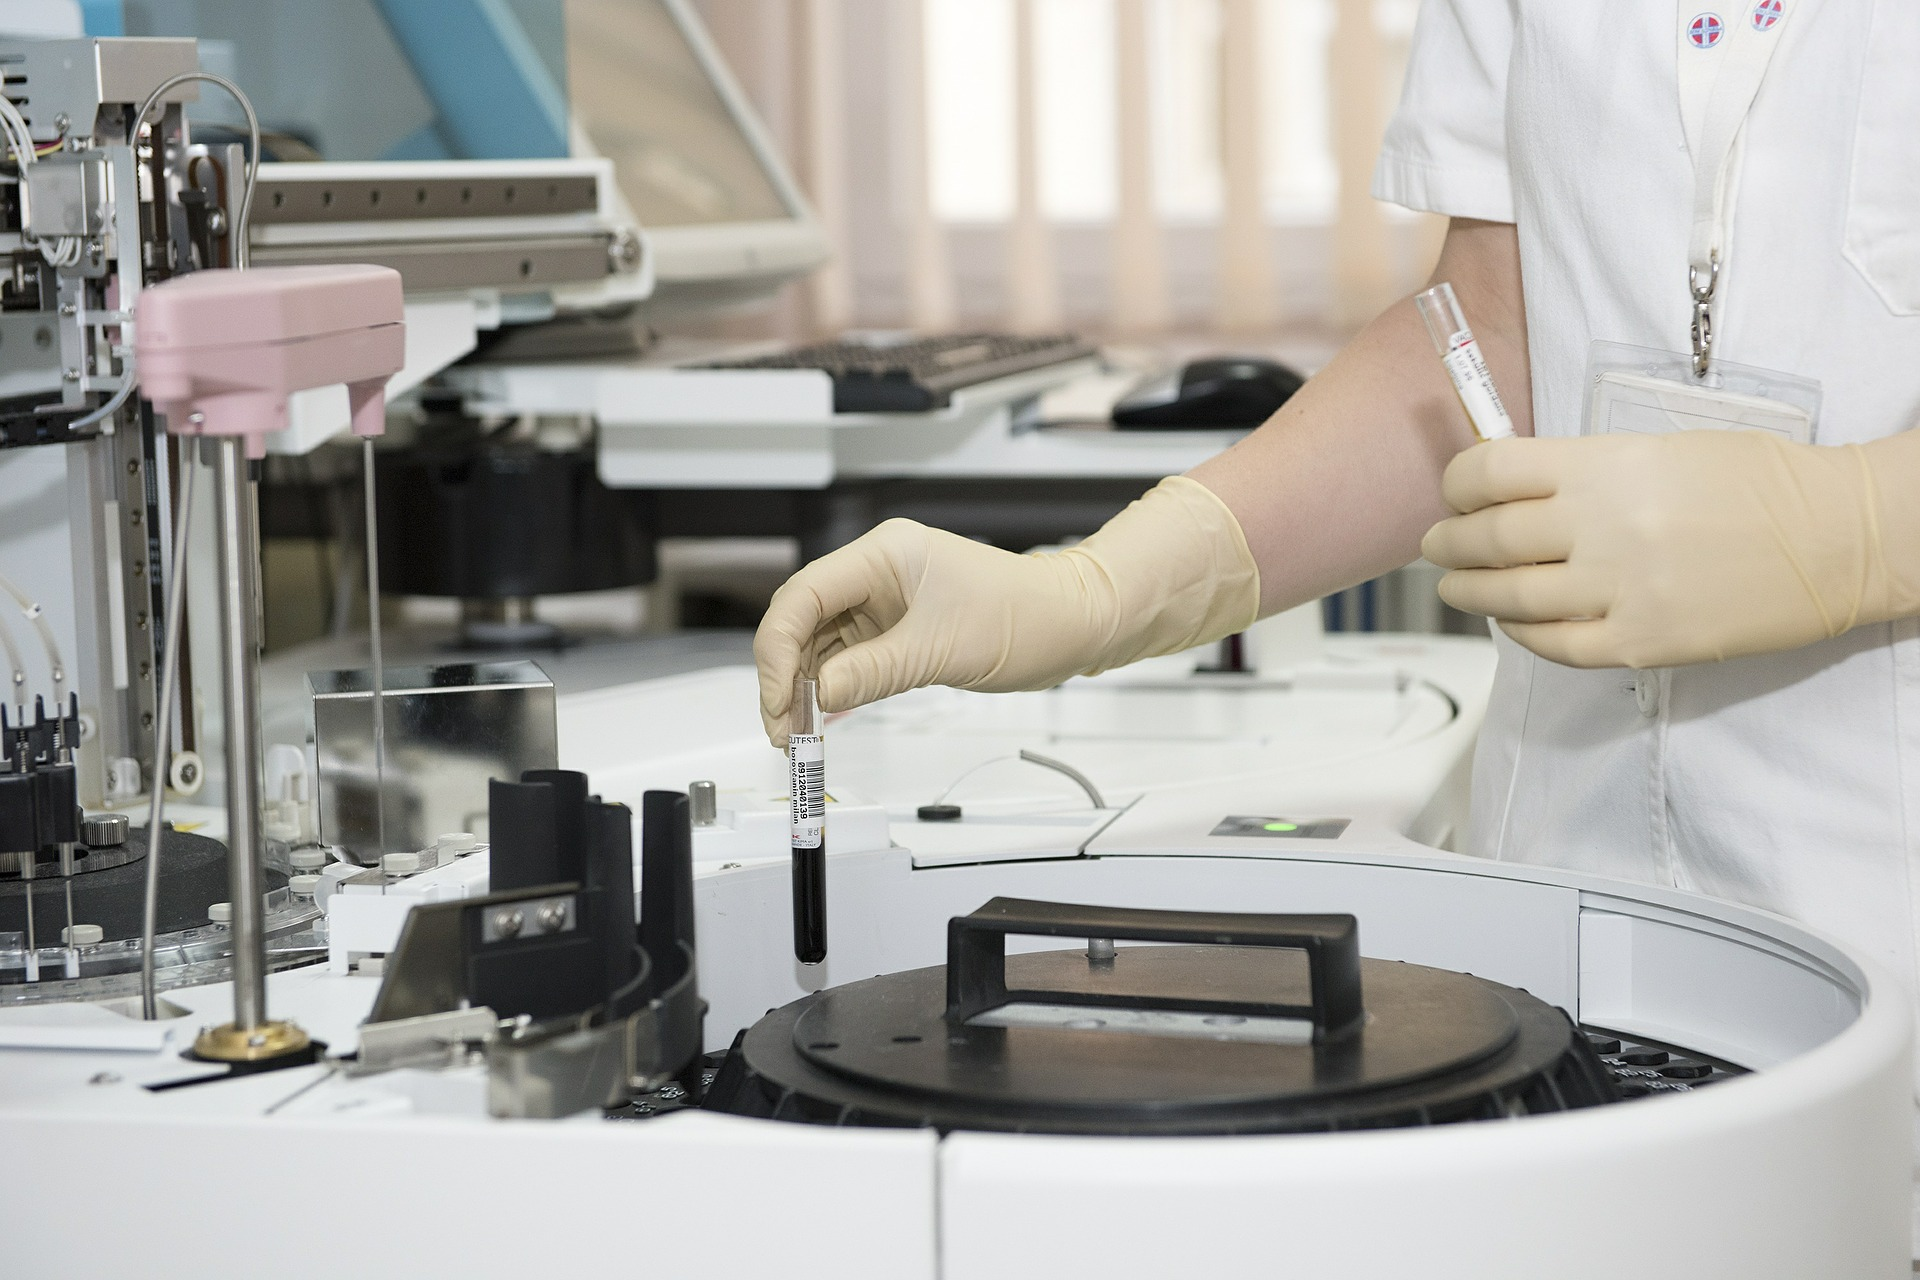 lab worker extracurriculars for med school